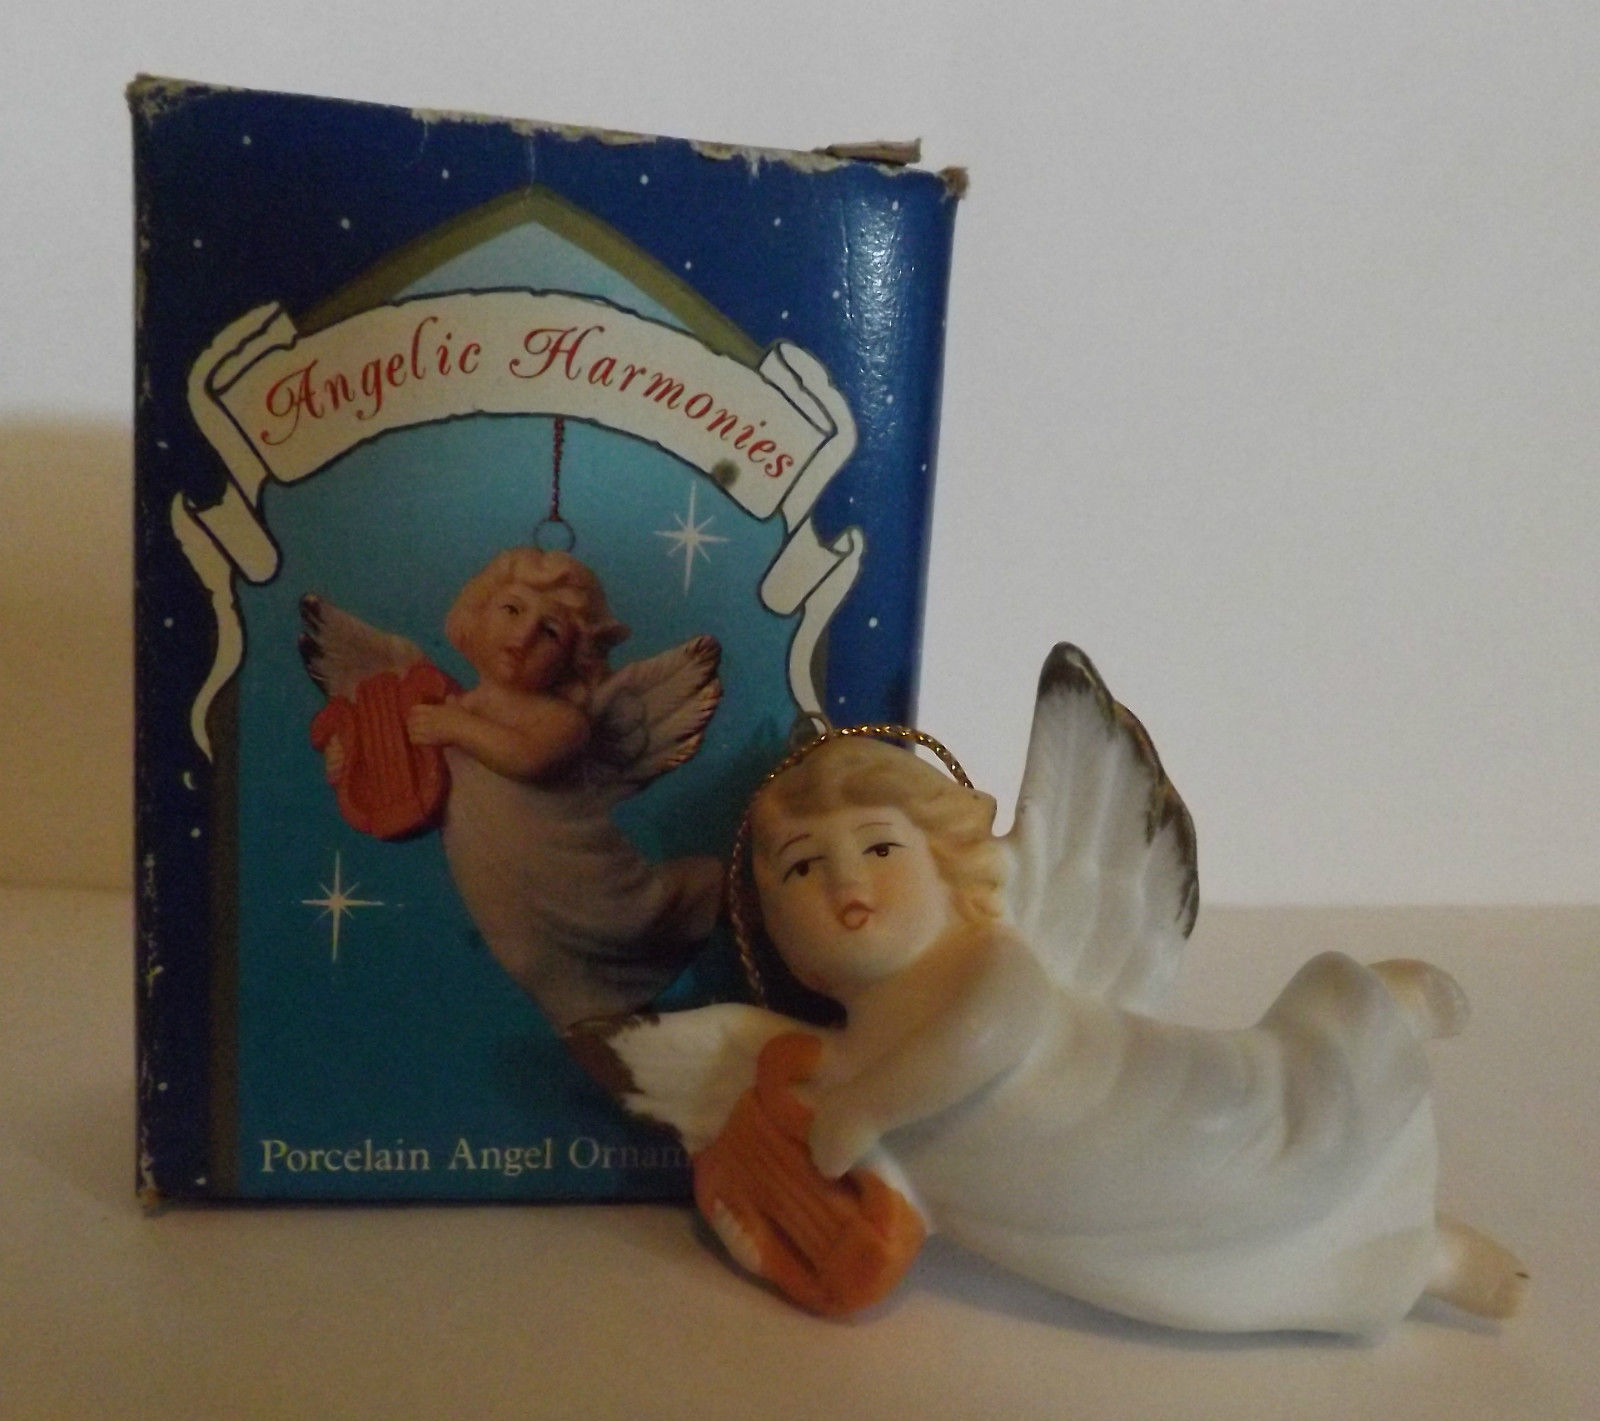 Angelic Harmonies Porcelain Angel Ornament by Russ image 2